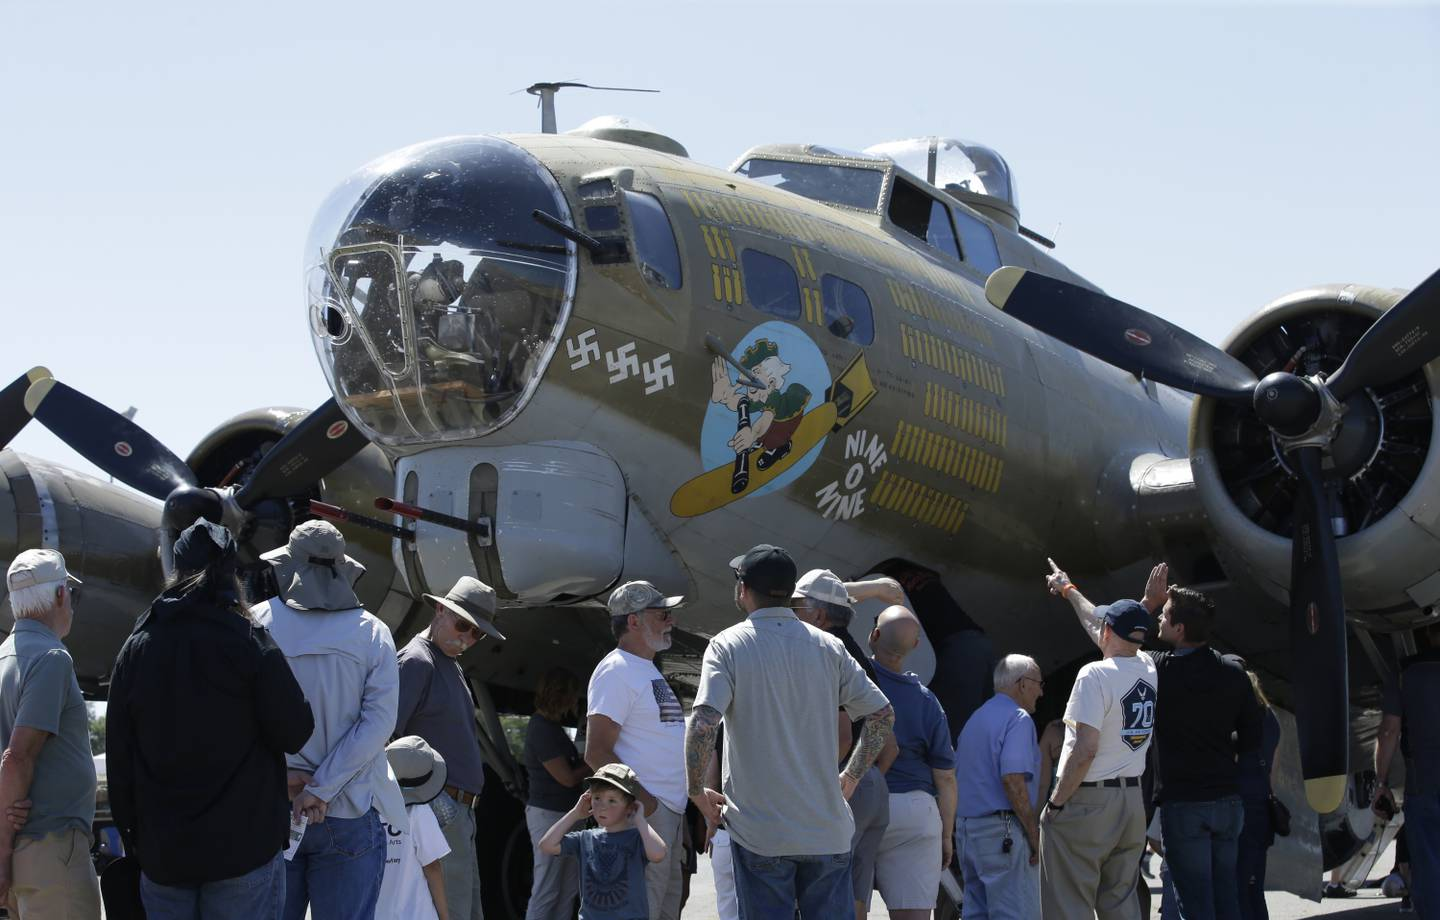 a Collings Foundation B-17 Flying Fortress